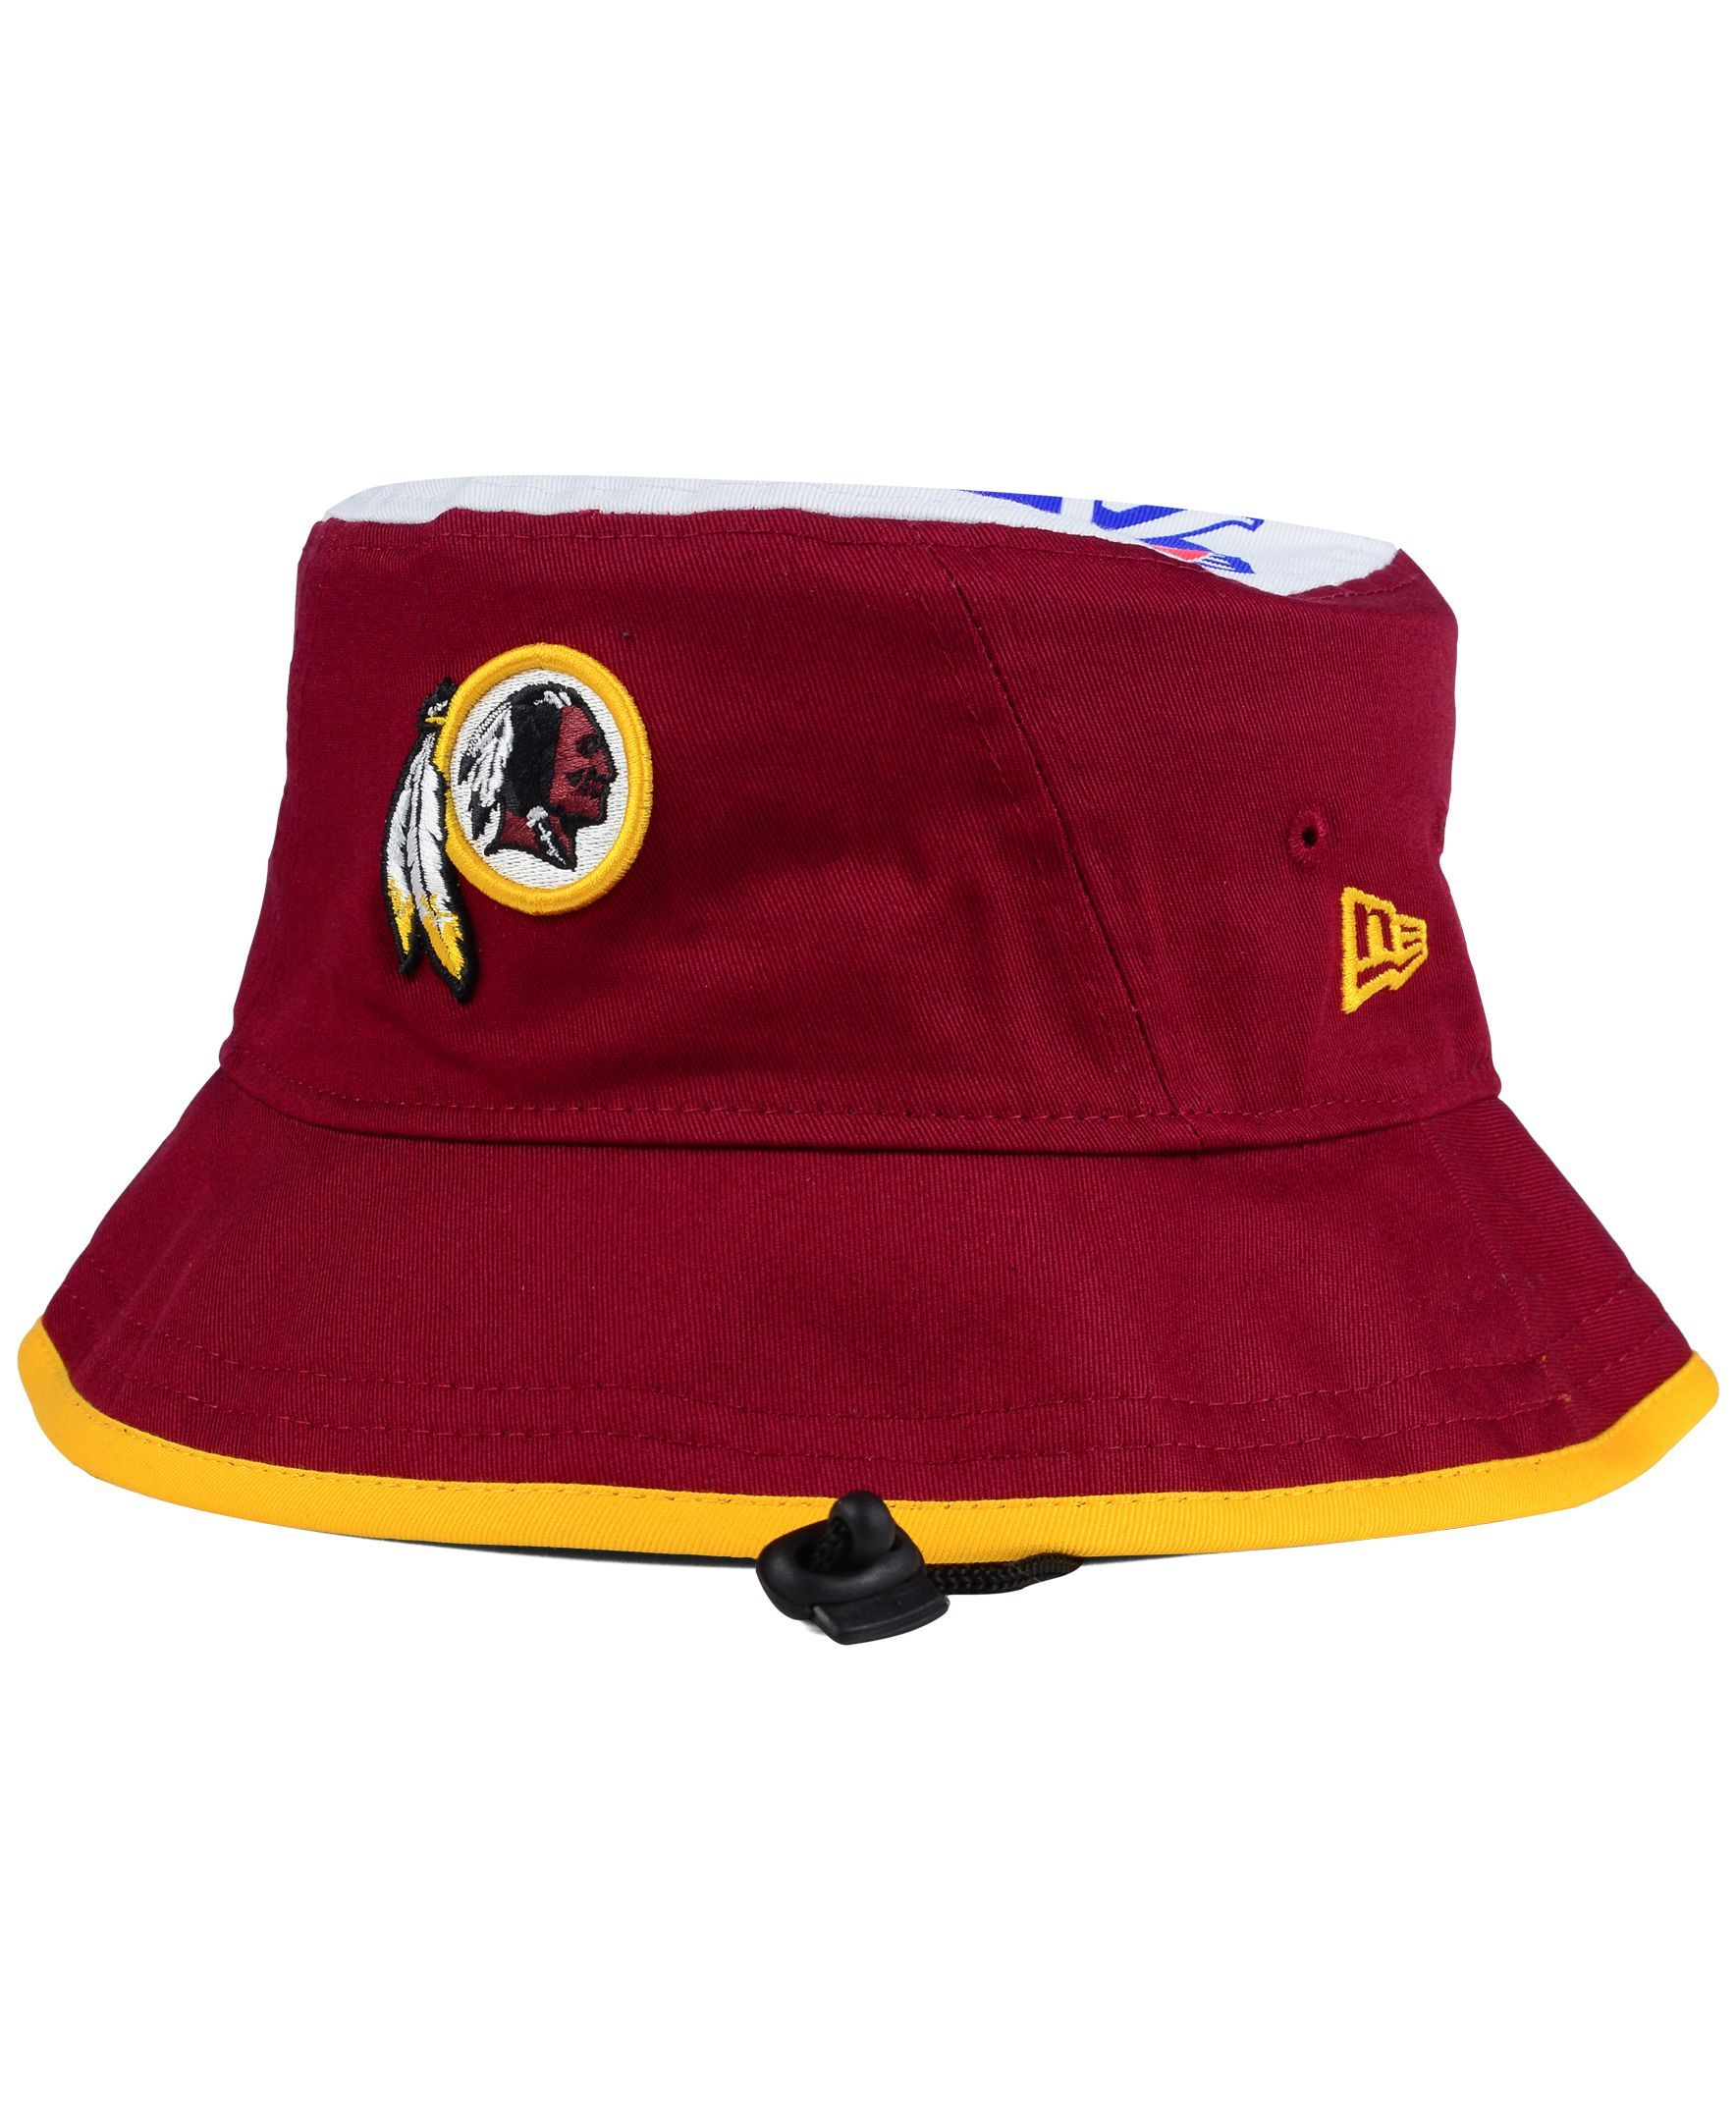 huge selection of 2306e 0b9c3 ... low price new era washington redskins traveler bucket hat 08603 2442a